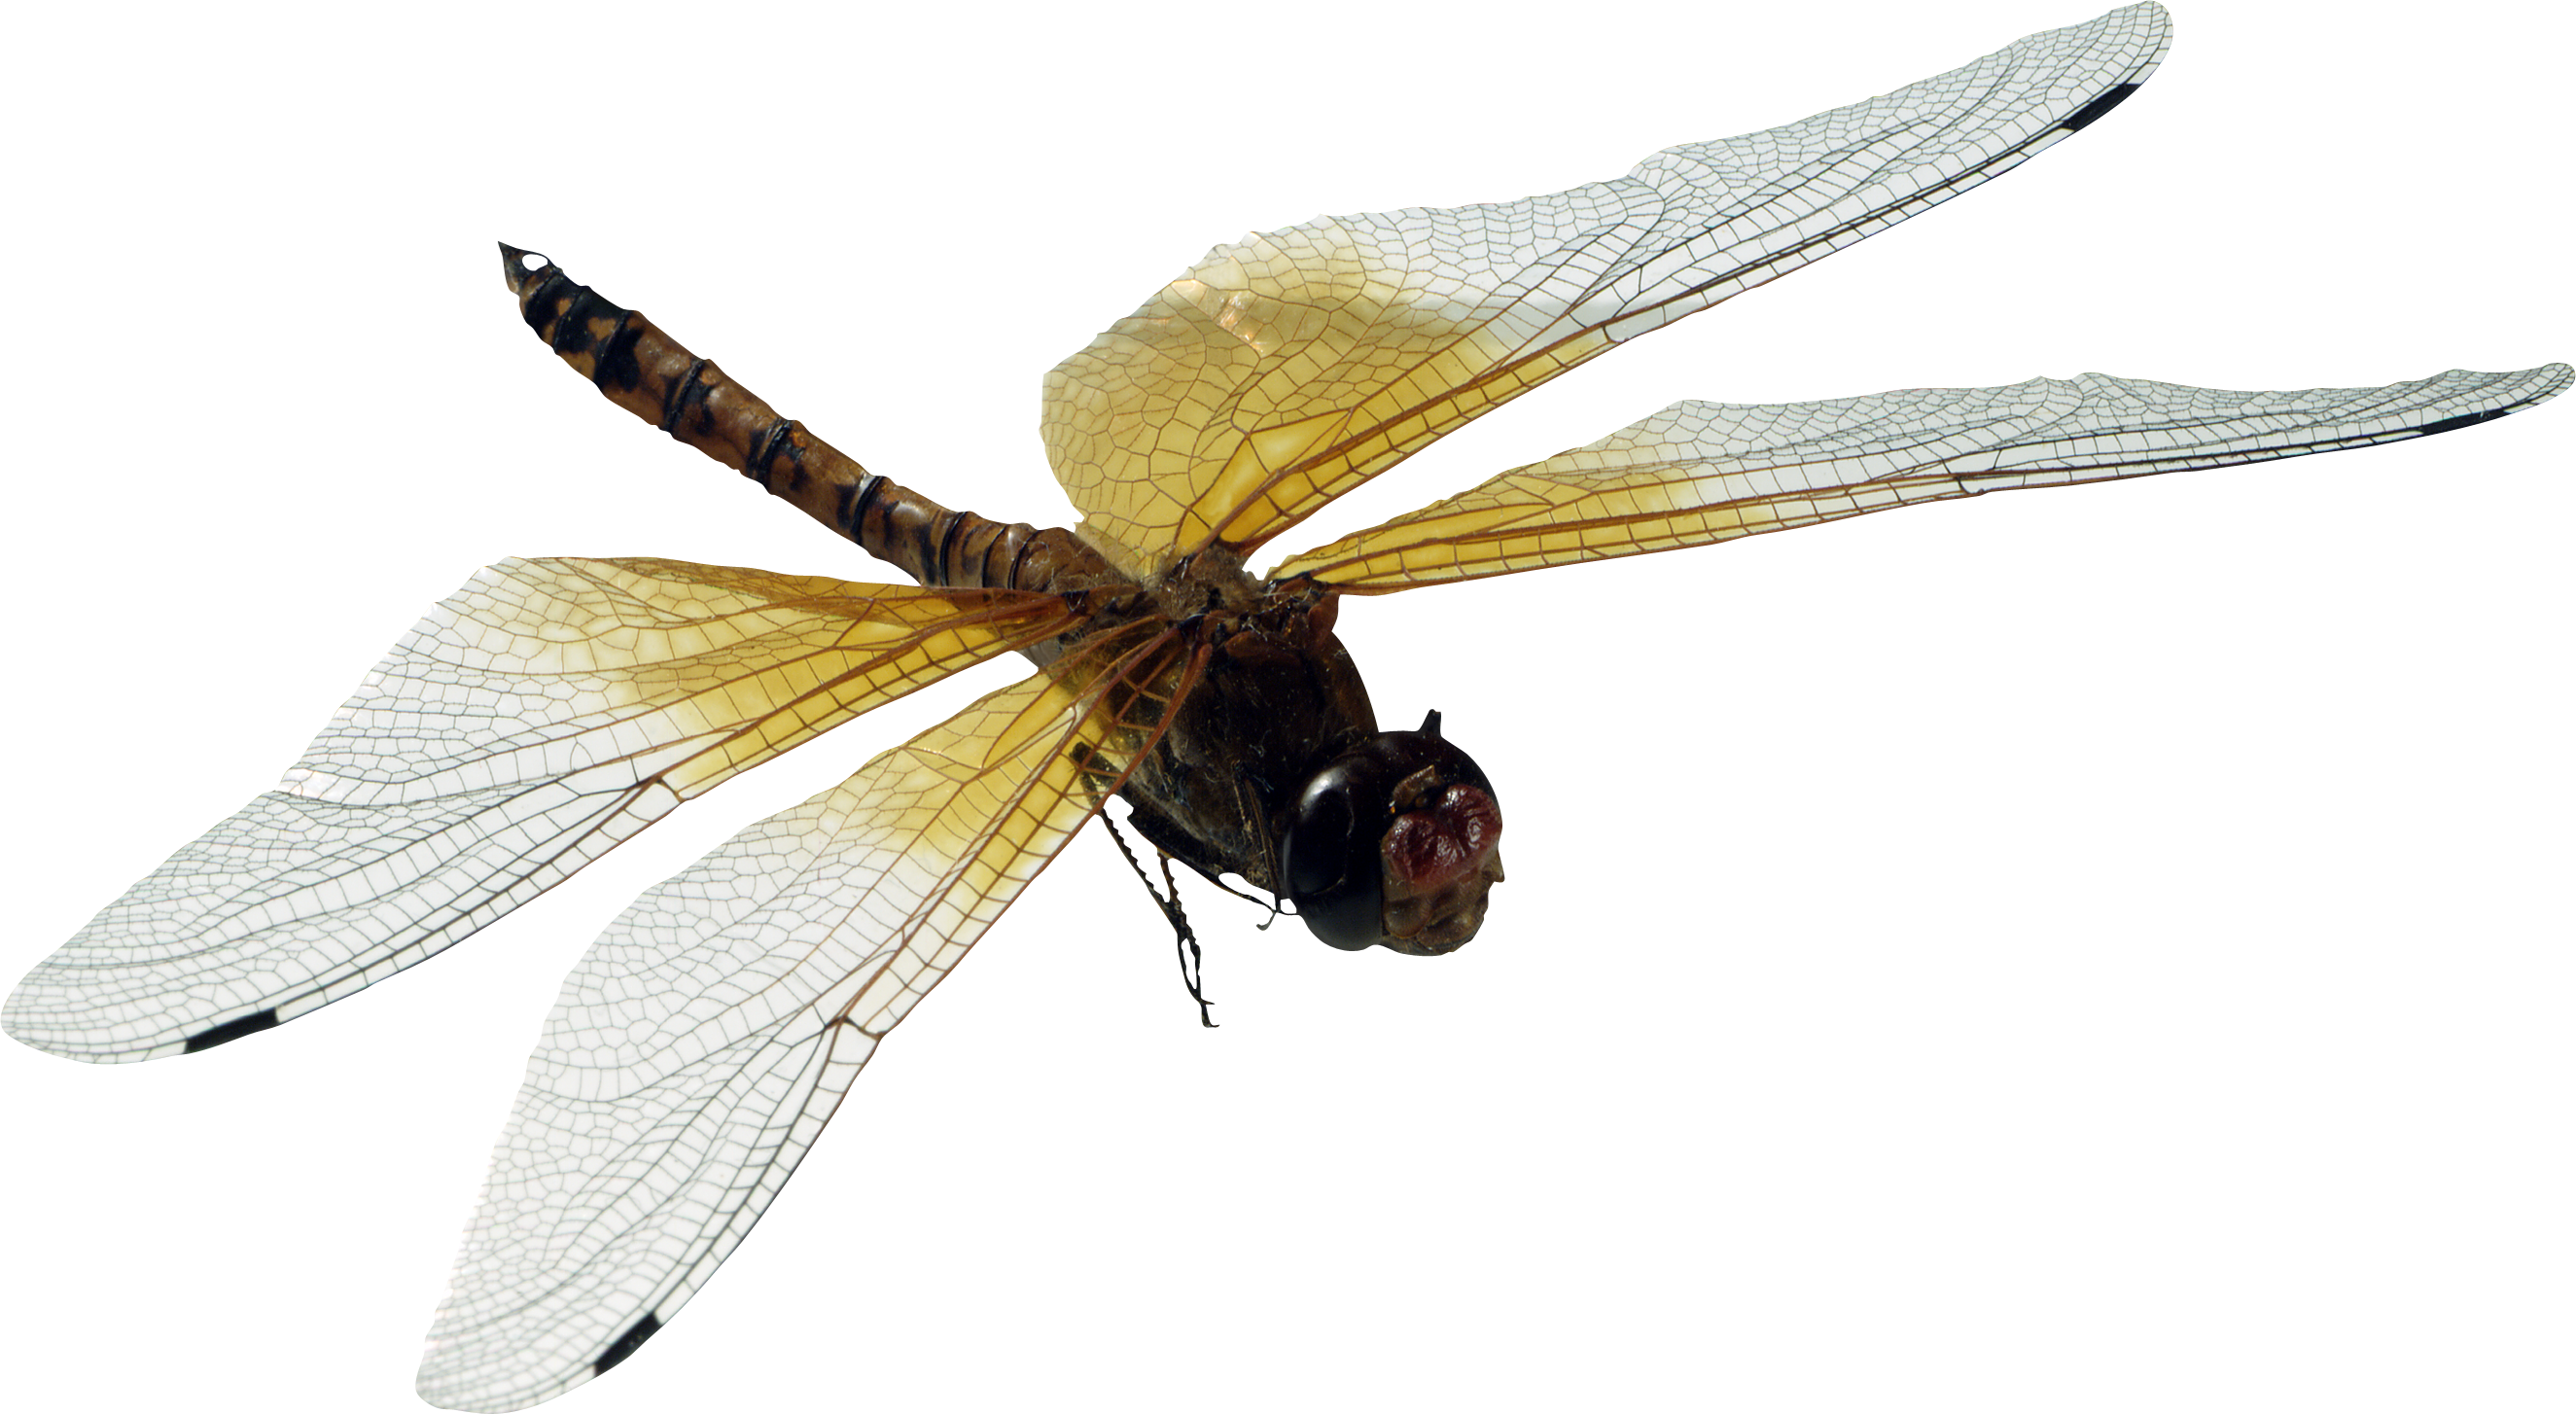 Dragonfly Png - Dragonfly, Transparent background PNG HD thumbnail